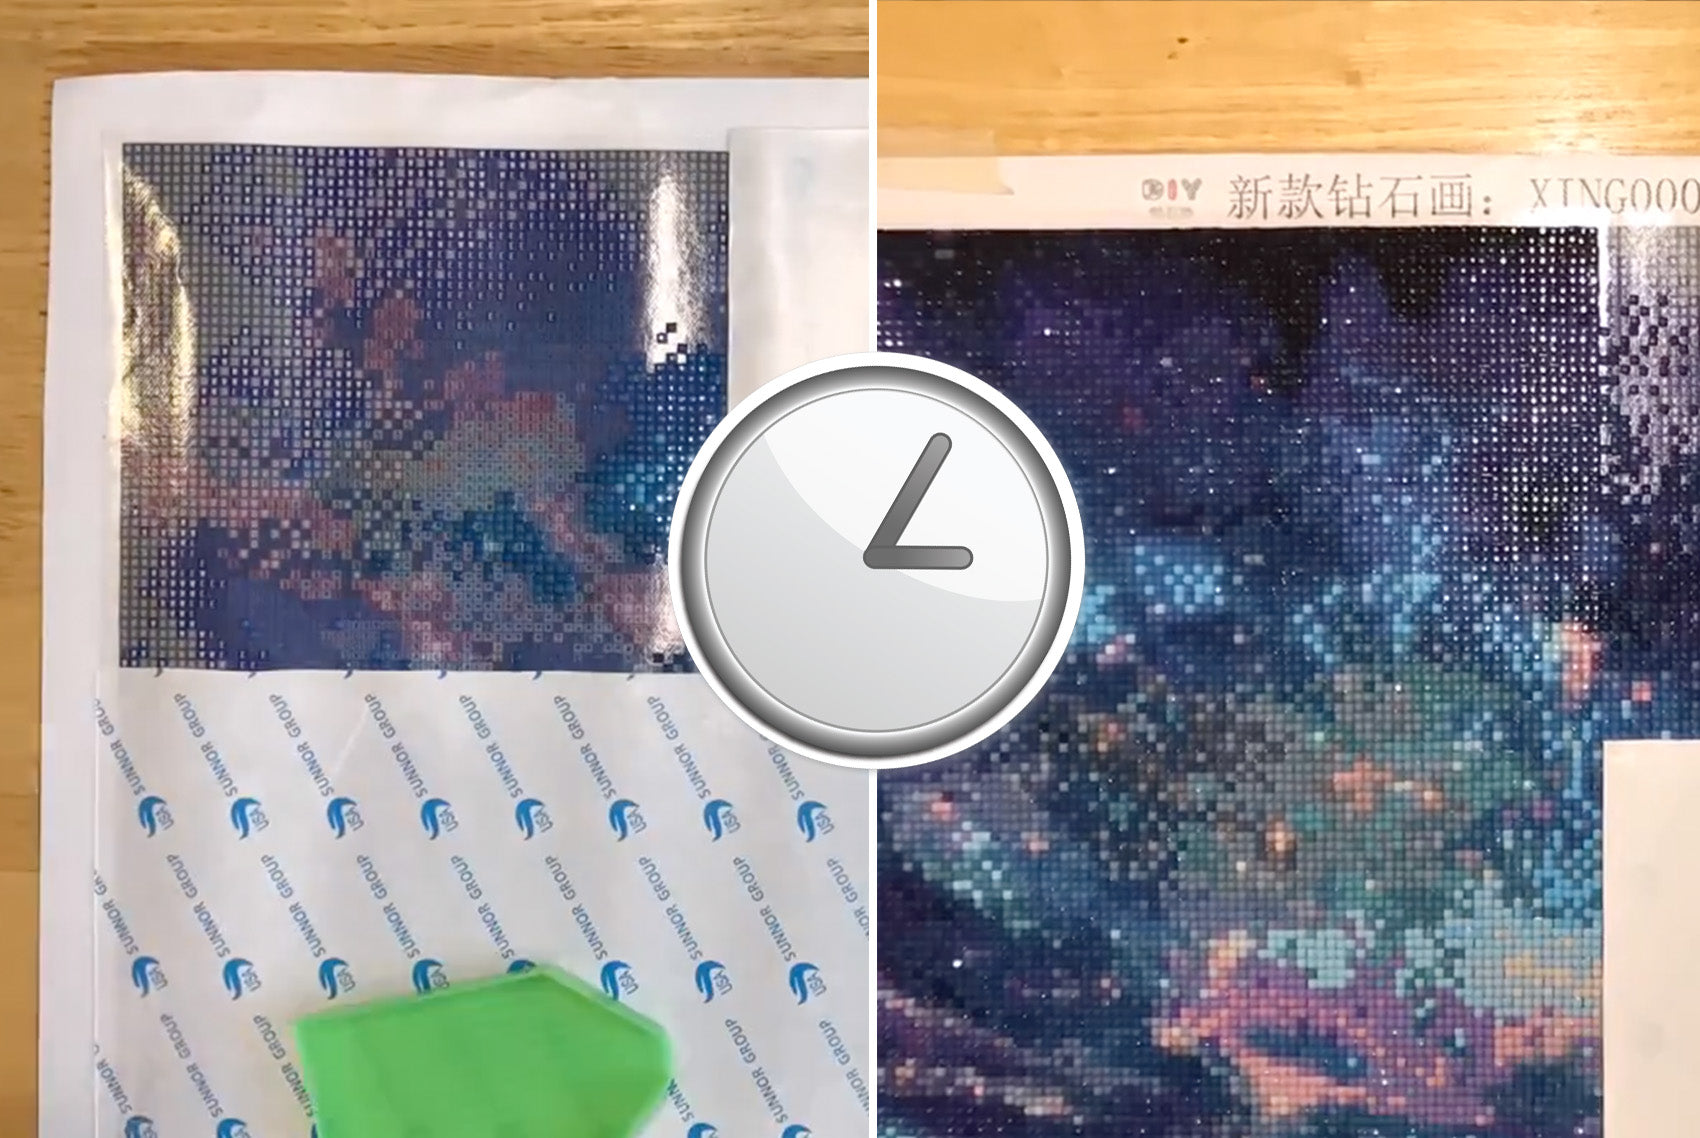 These Amazing 5D Diamond Painting Time-Lapse Videos Will Relieve Your Anxiety